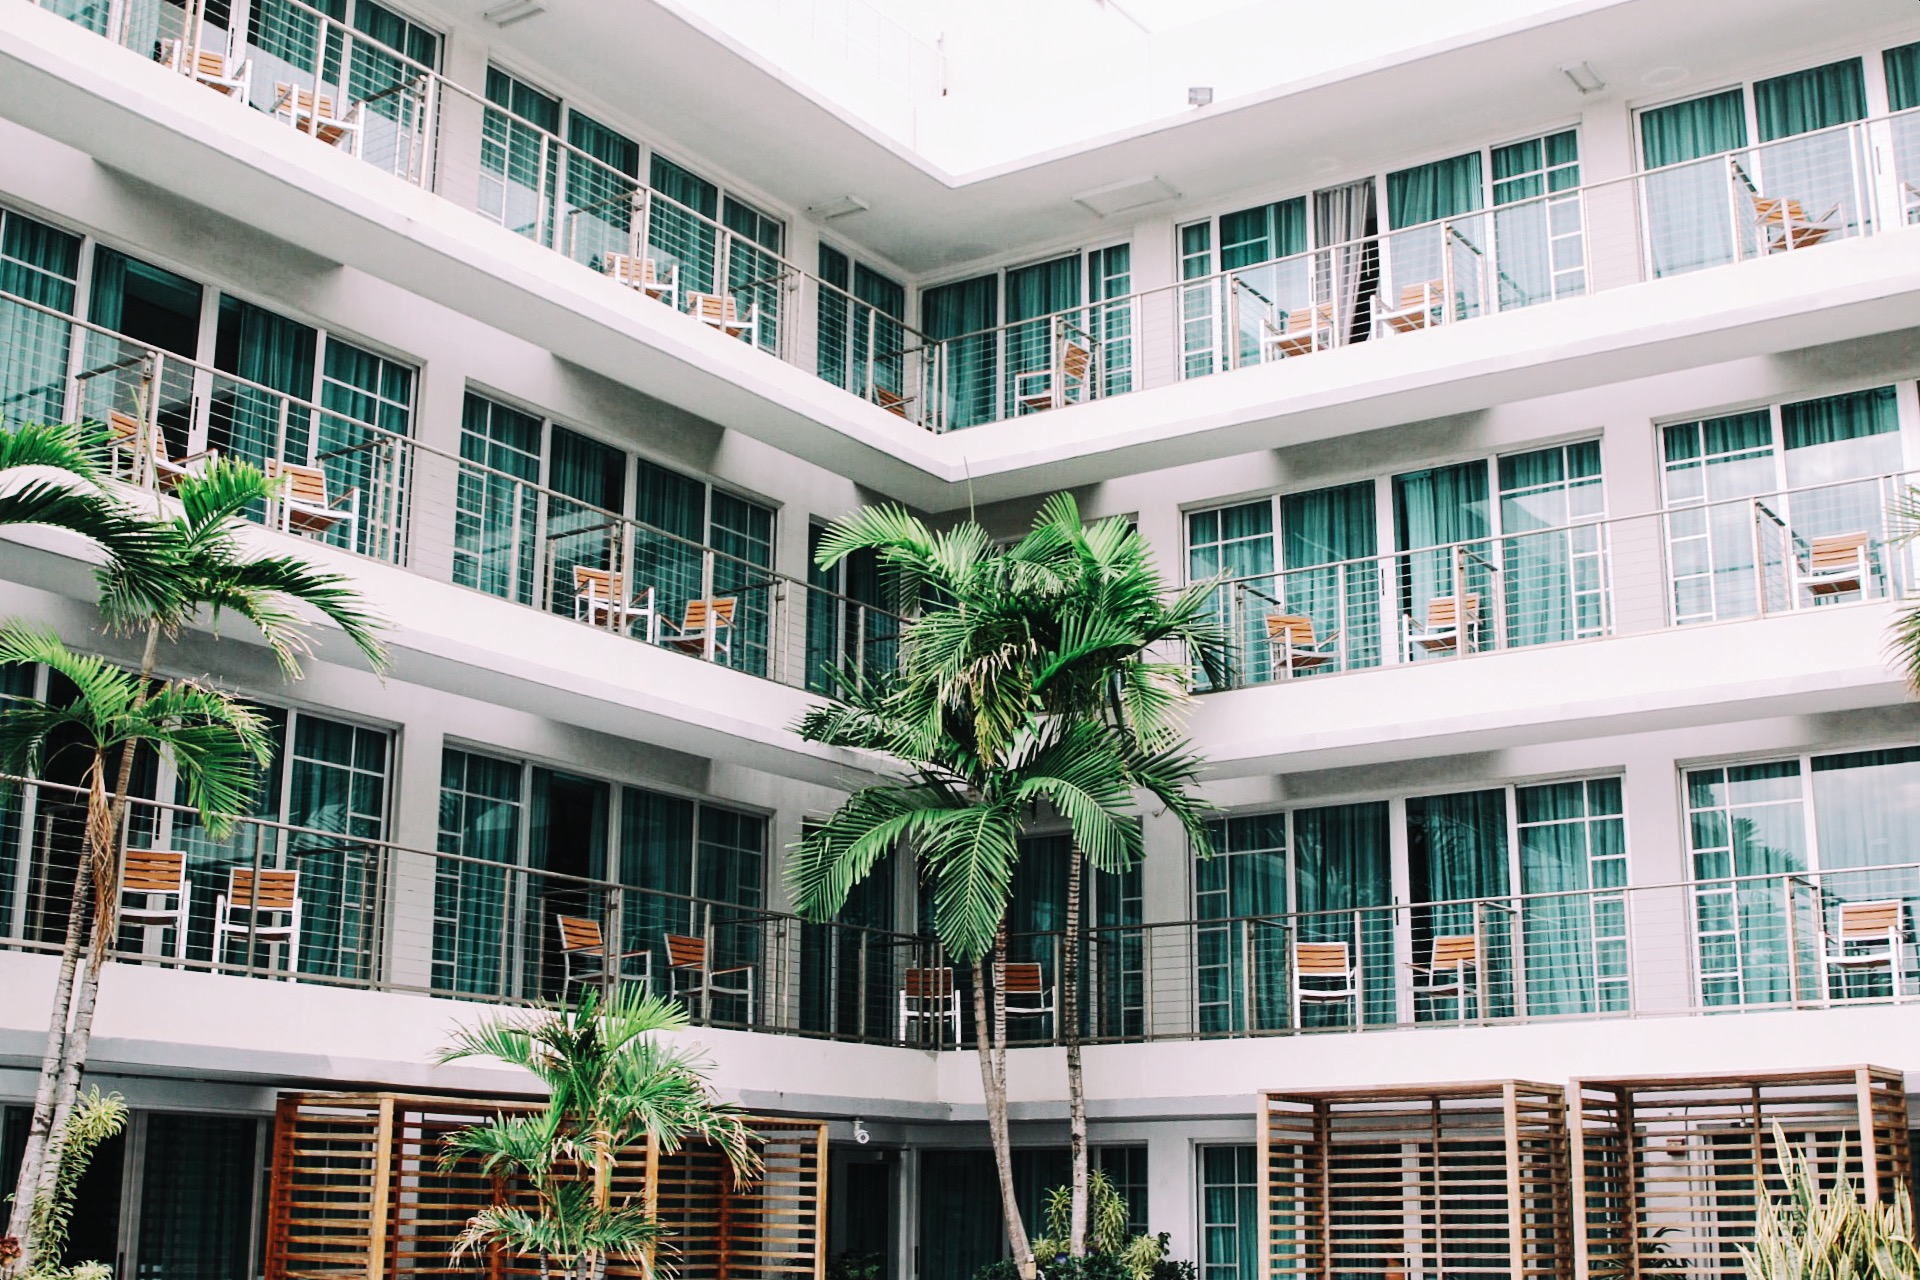 Handling Hotel Expectations in a Vacation Rental World